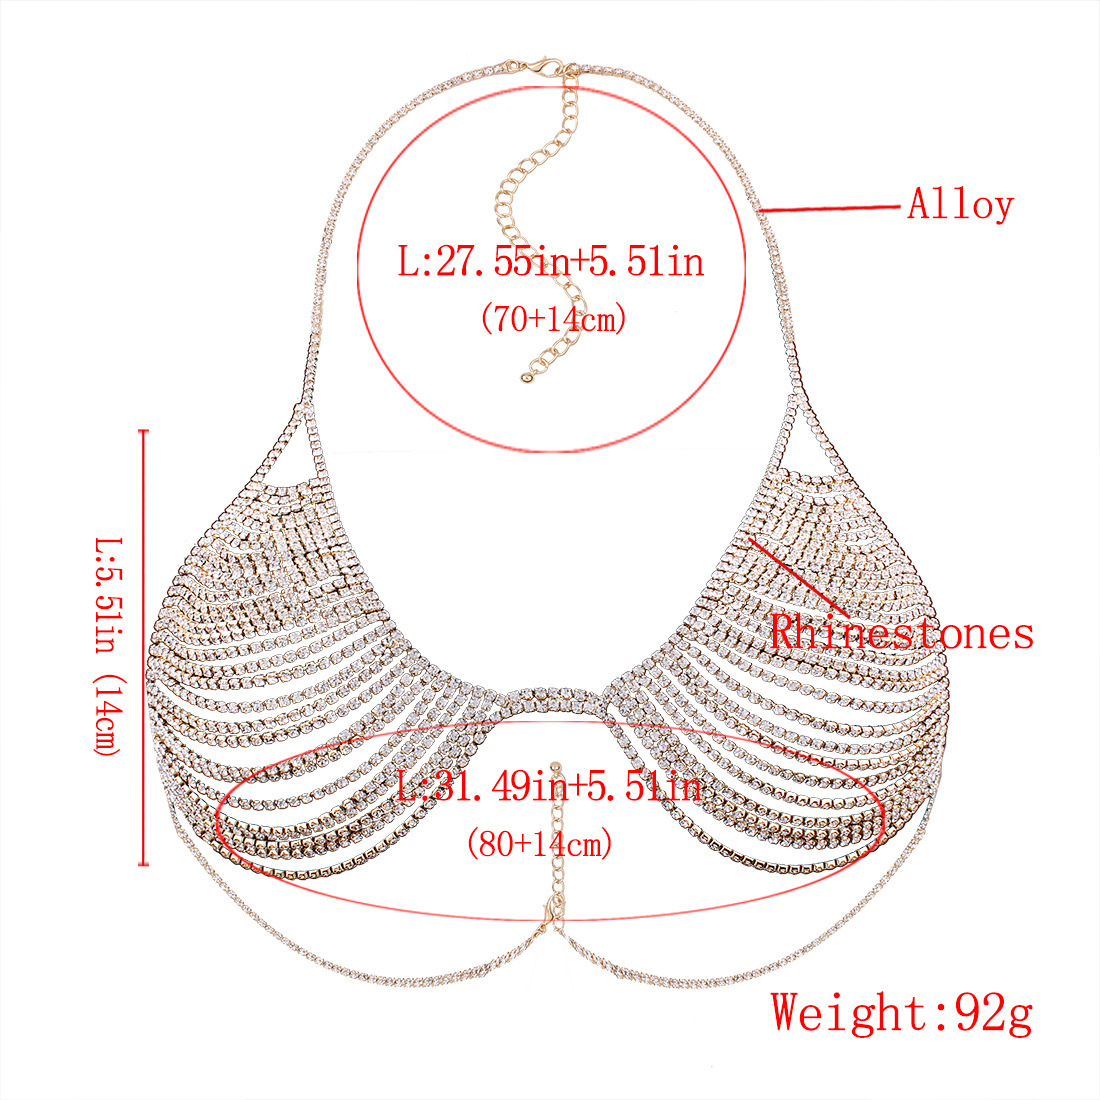 Fashion Full Rhinestone Crystal Metal Chain Bra Body Jewelry